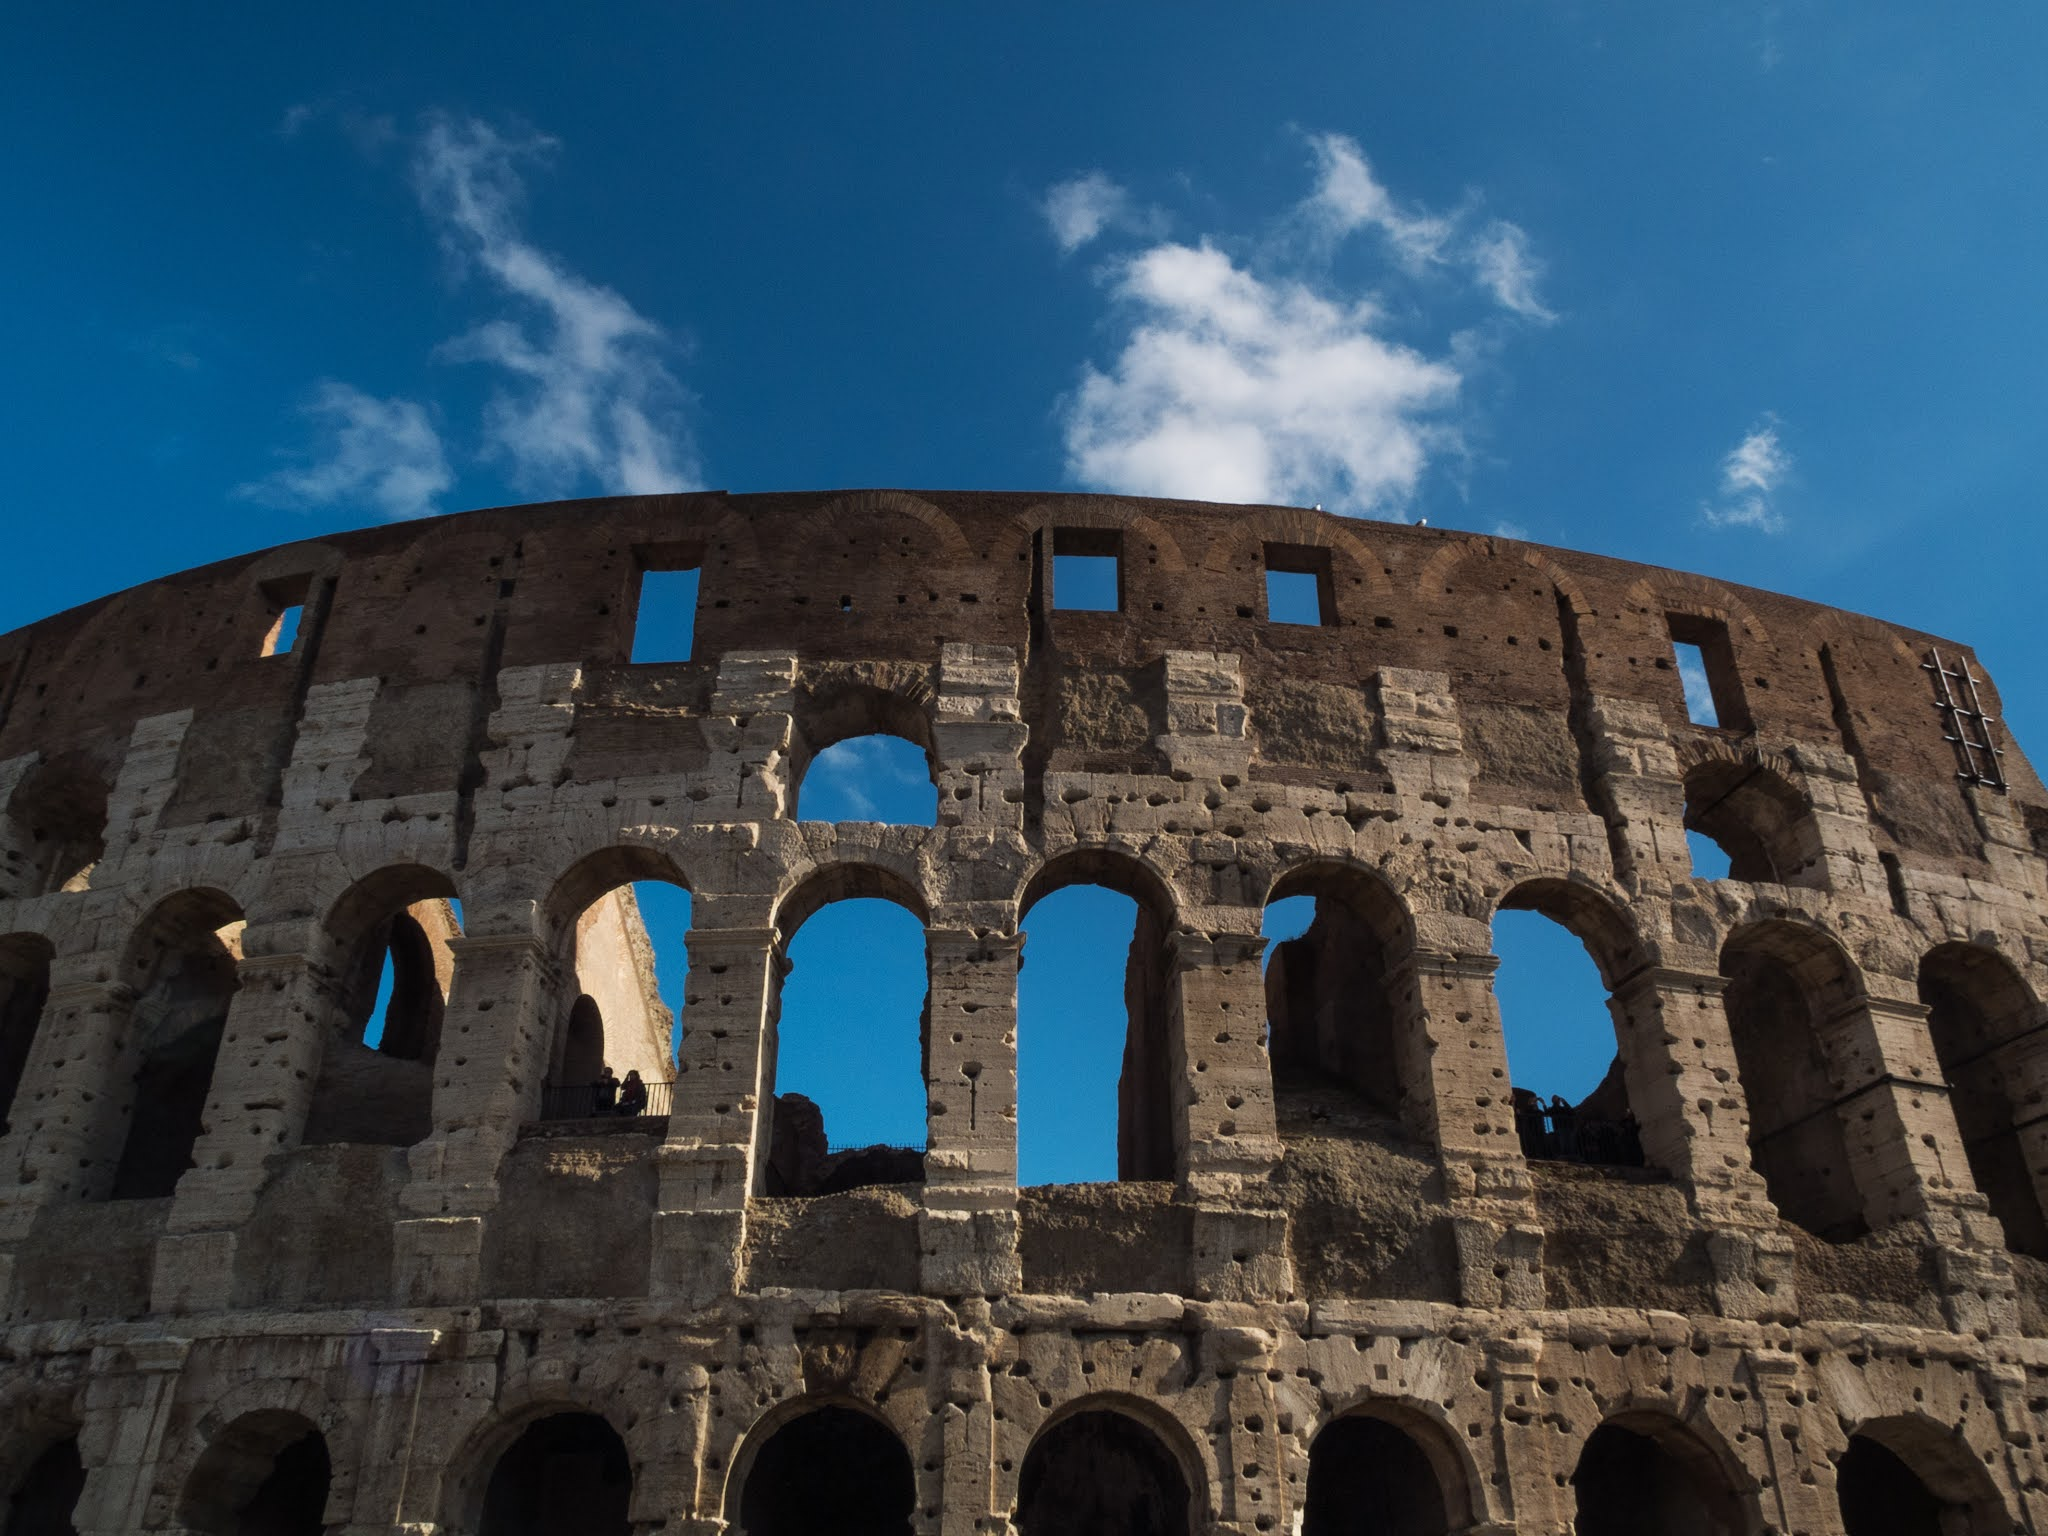 View of the Colosseum against a blue sky.